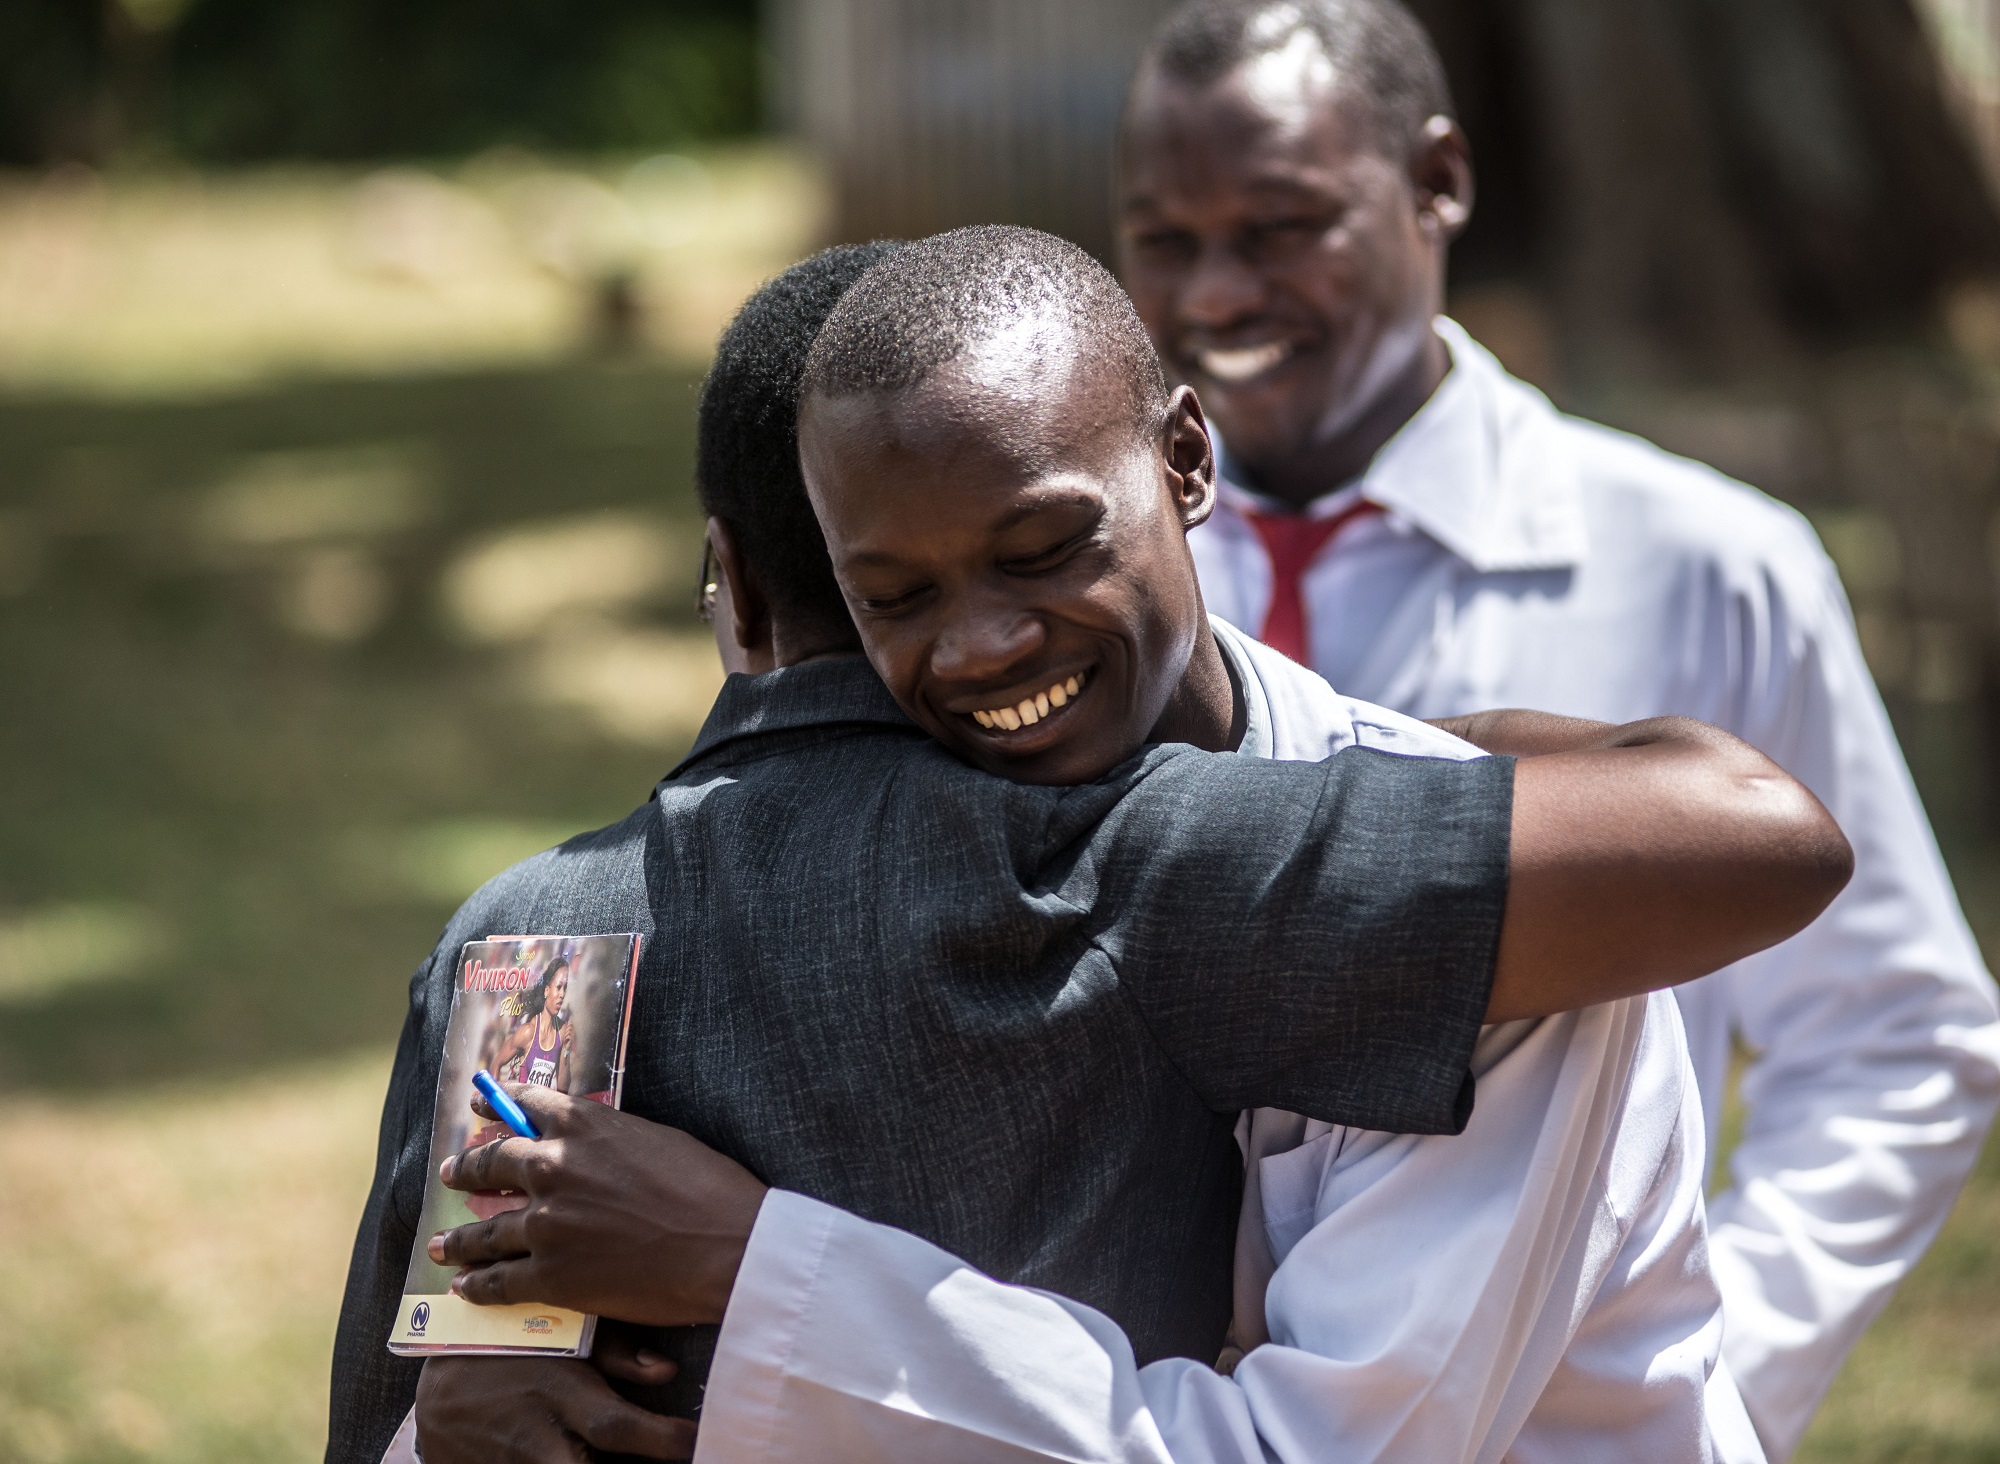 Dennis Odongo, 24, a student of the Soroti Pharmacy School, meets Christine Alura, IntraHealth Uganda Nursing and Midwifery program officer, for the first time.